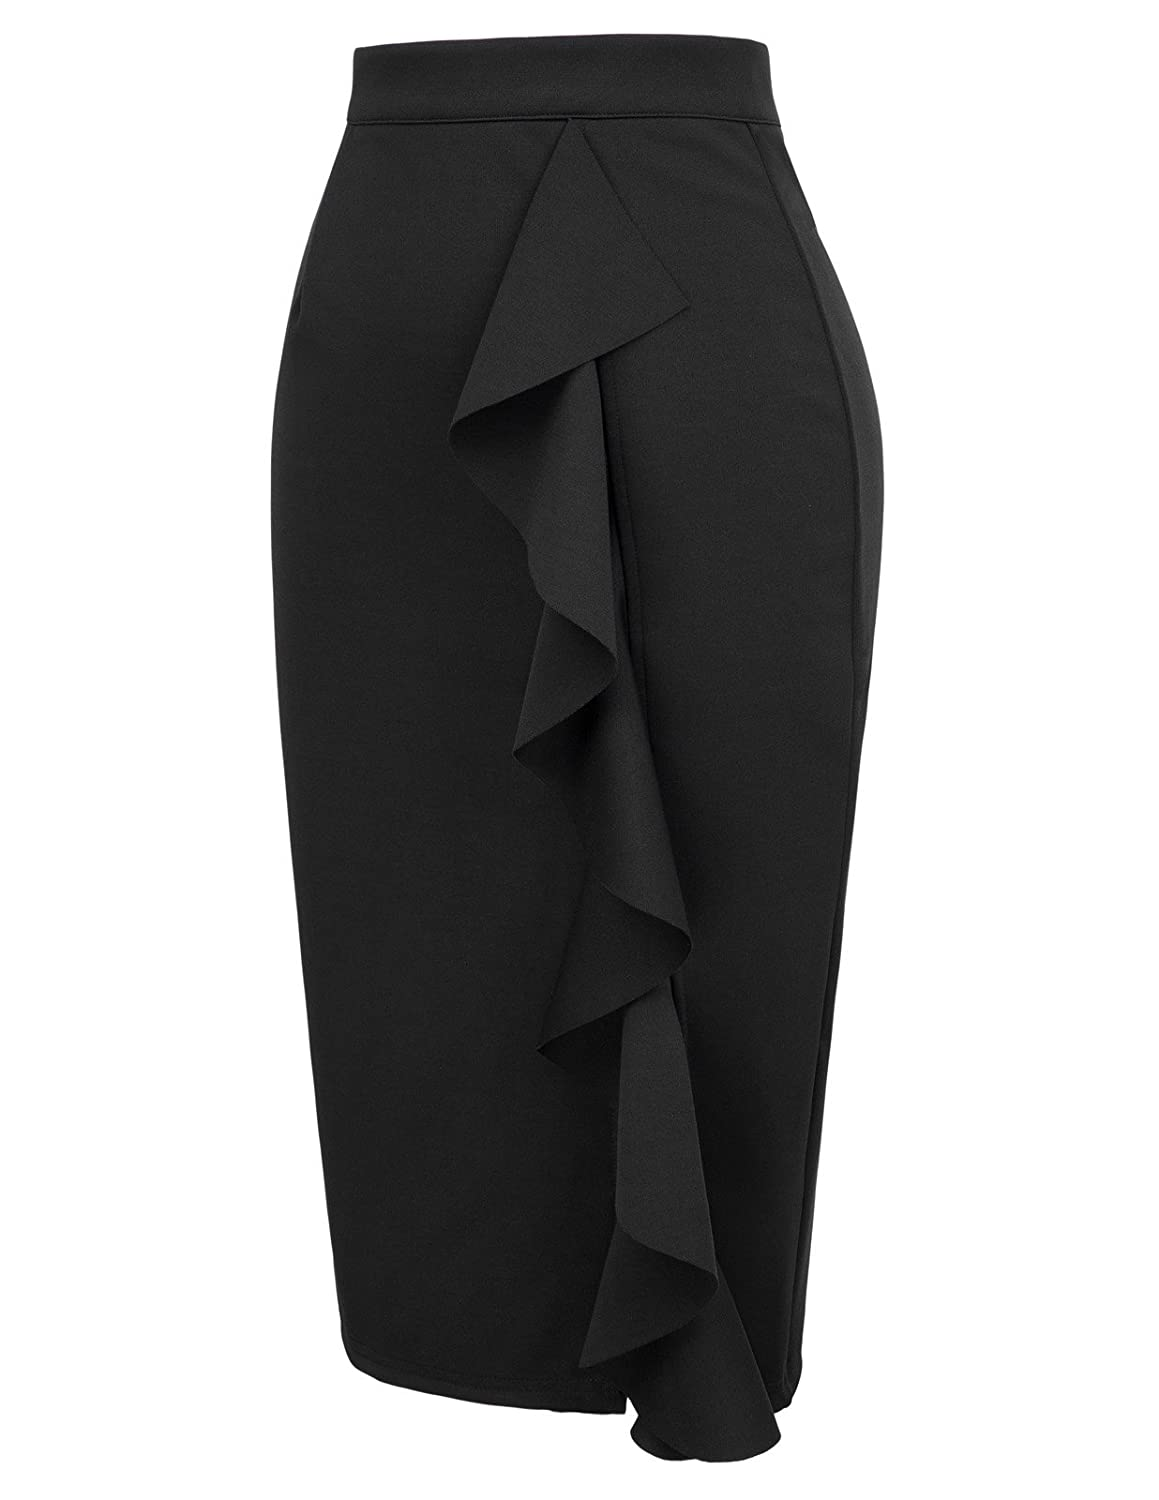 9ff5af11d0 GRACE KARIN Women's Ruffle Office Wear Slim Fit Vintage Pencil Skirt at  Amazon Women's Clothing store: